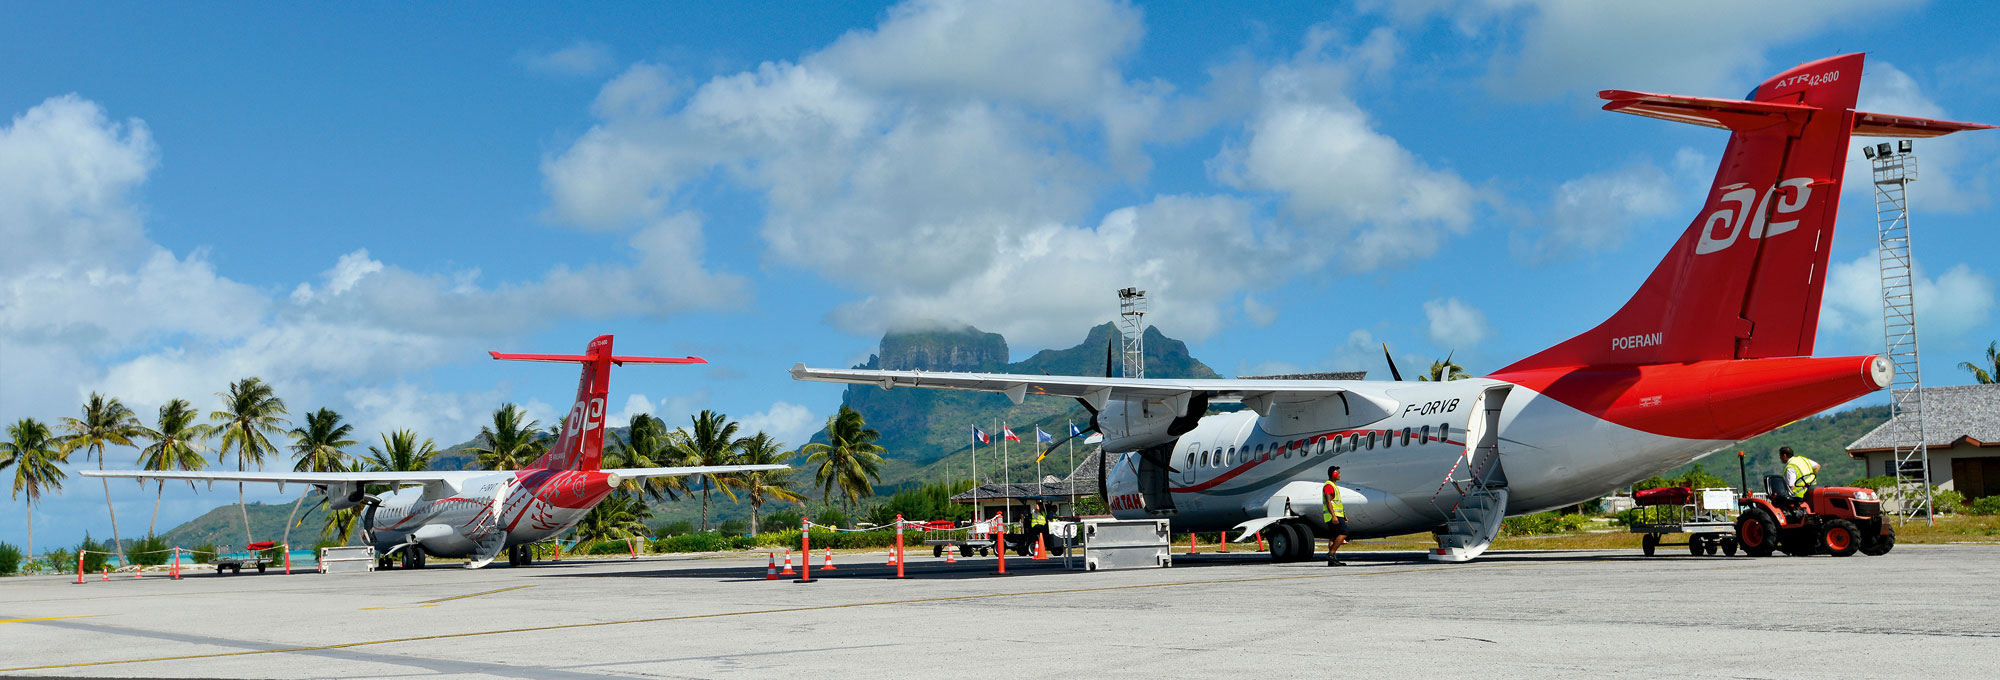 Air Tahiti aircraft on Bora Bora tarmac - © P. Bacchet